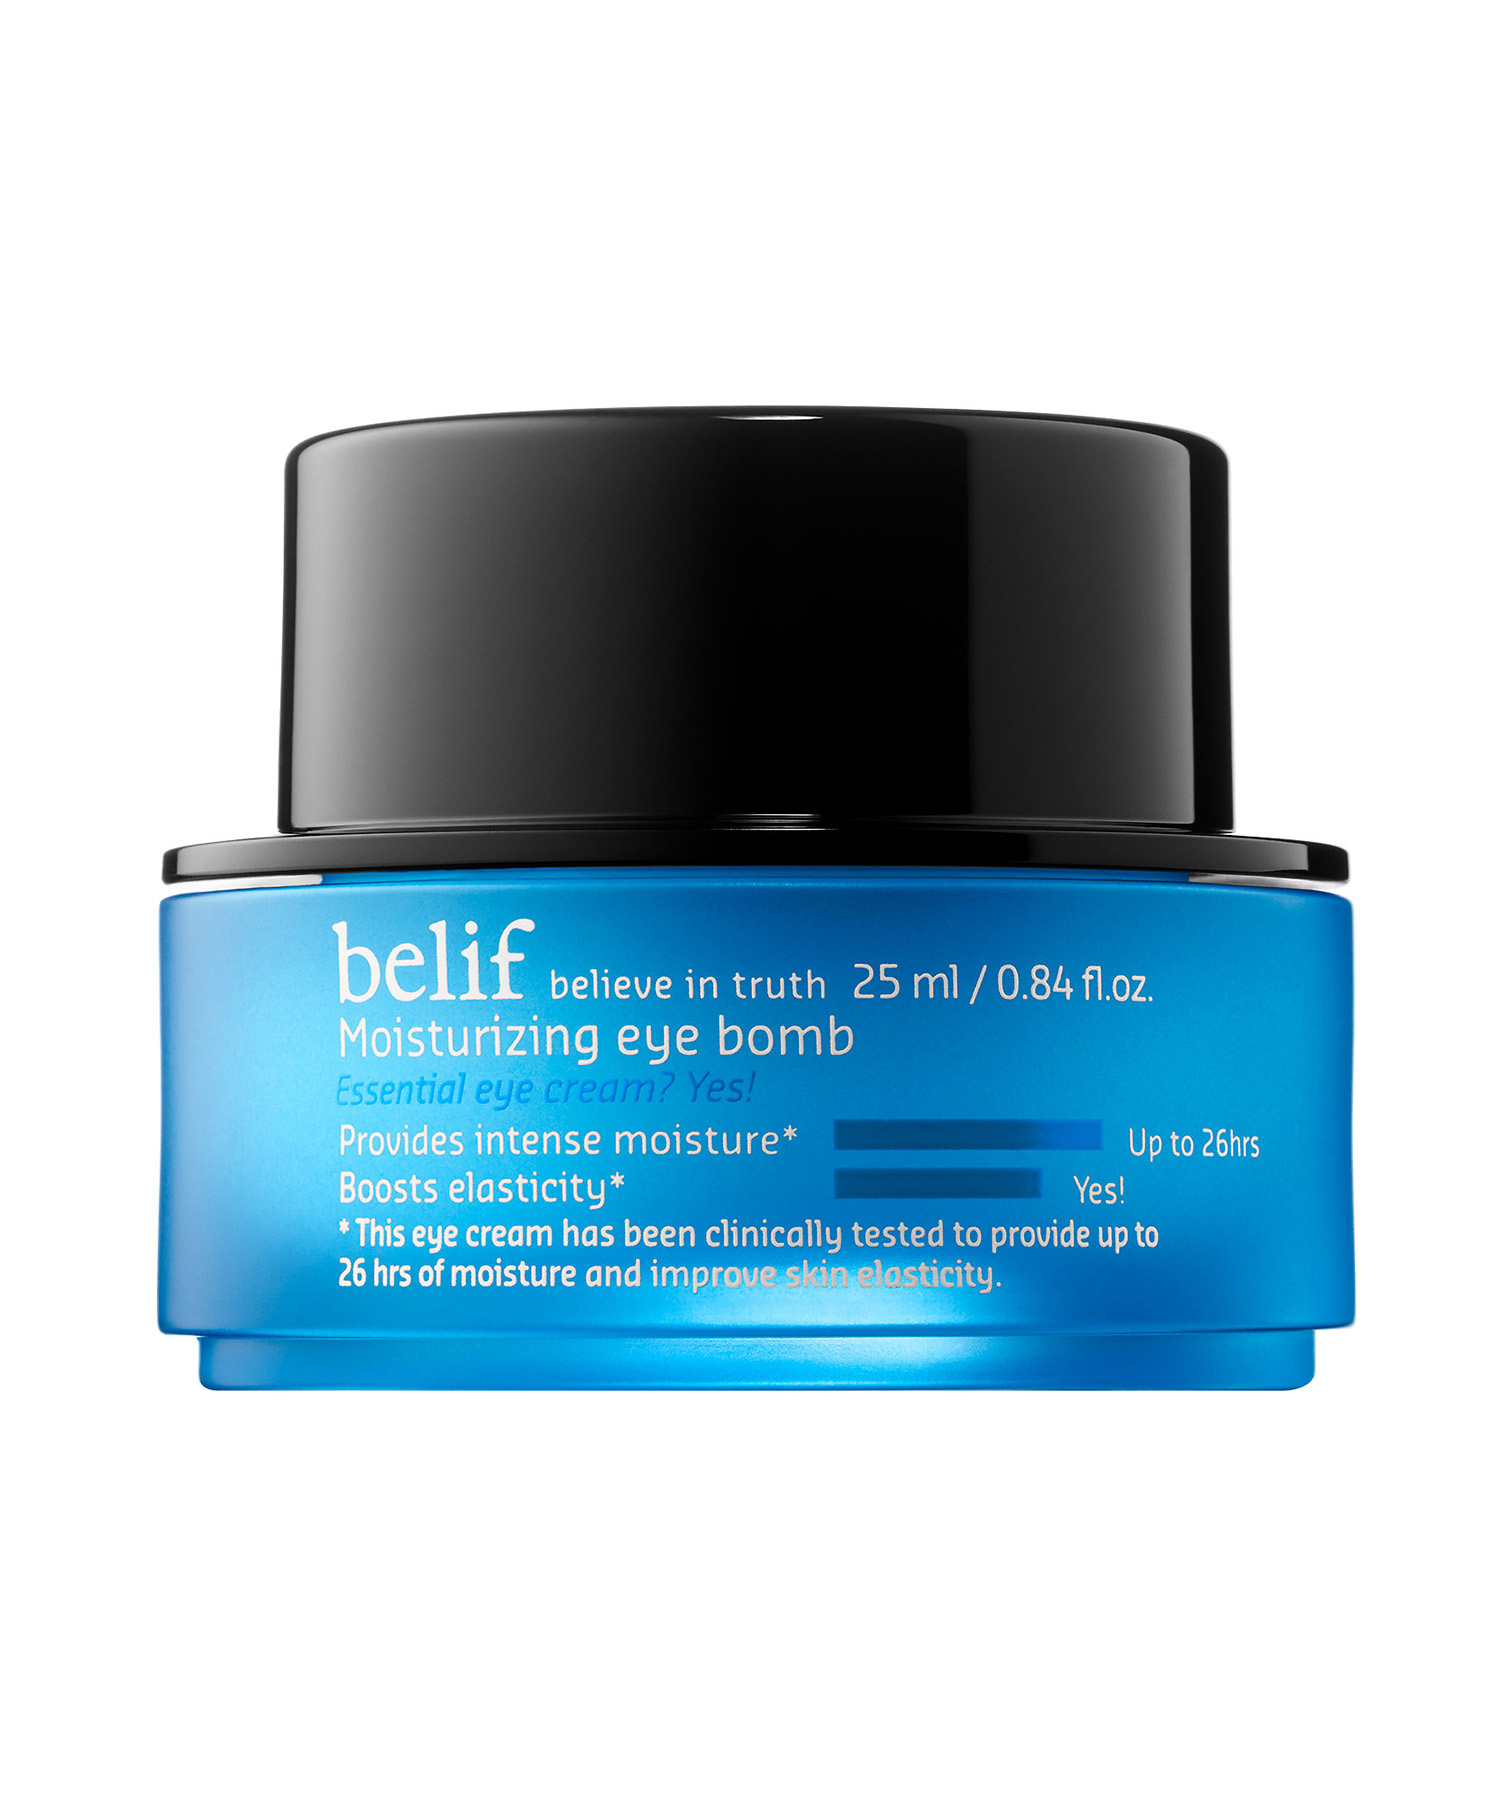 This Is the Best-Selling Eye Cream on Sephora.com